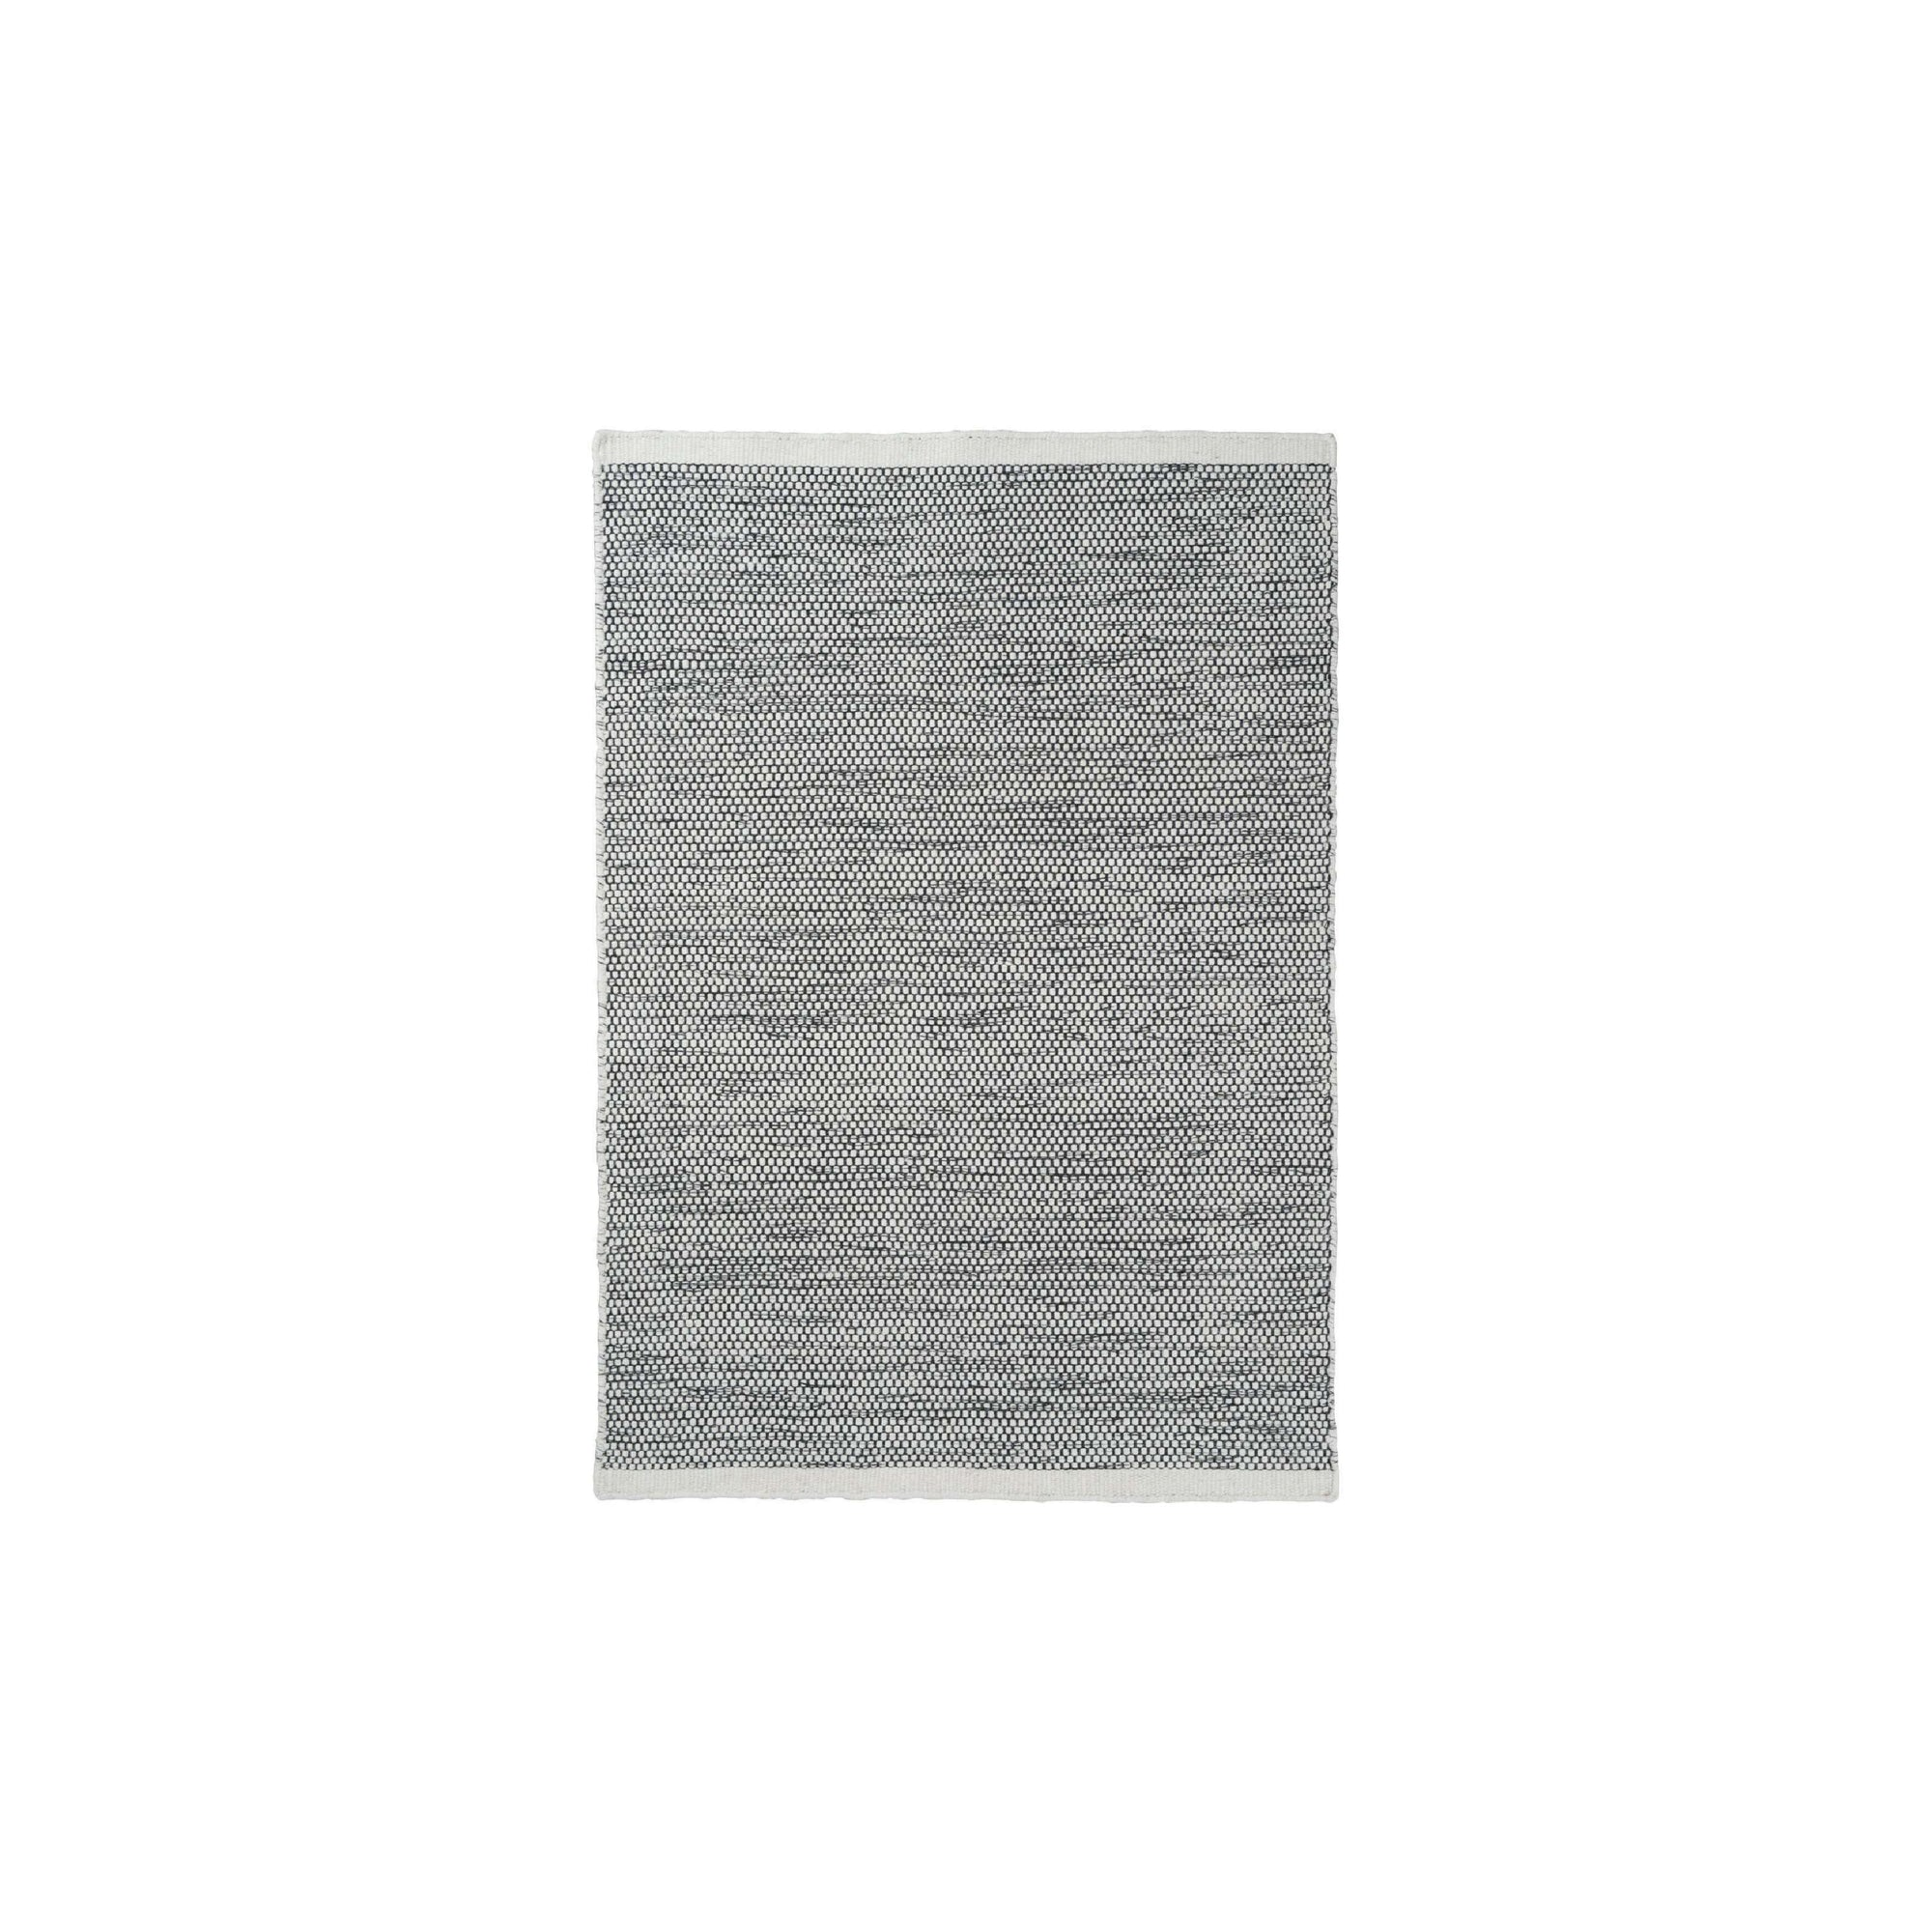 FUGITO 2.4m Rug In Mixed Colour